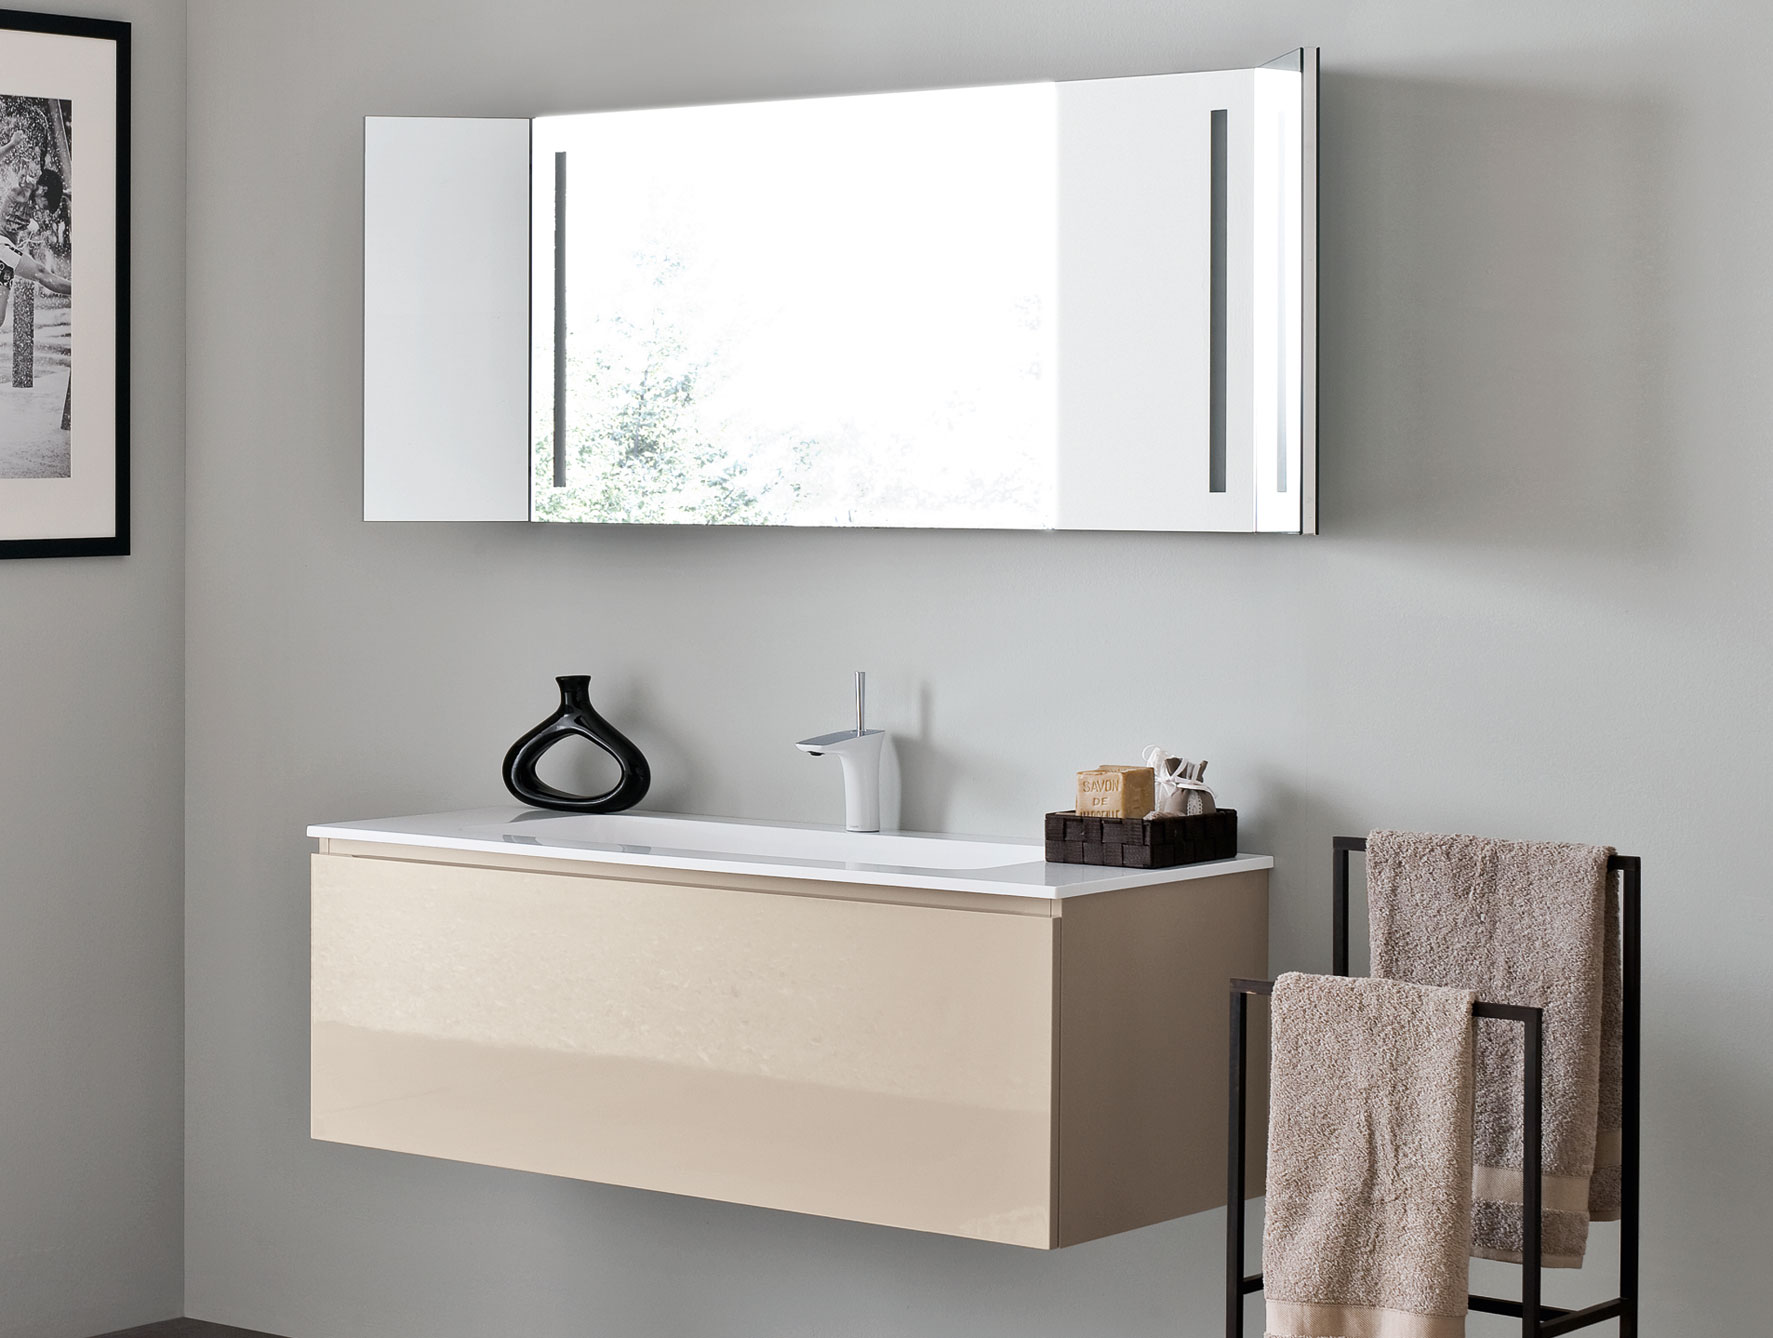 Floating Bathroom Vanity and Sink Cabinets